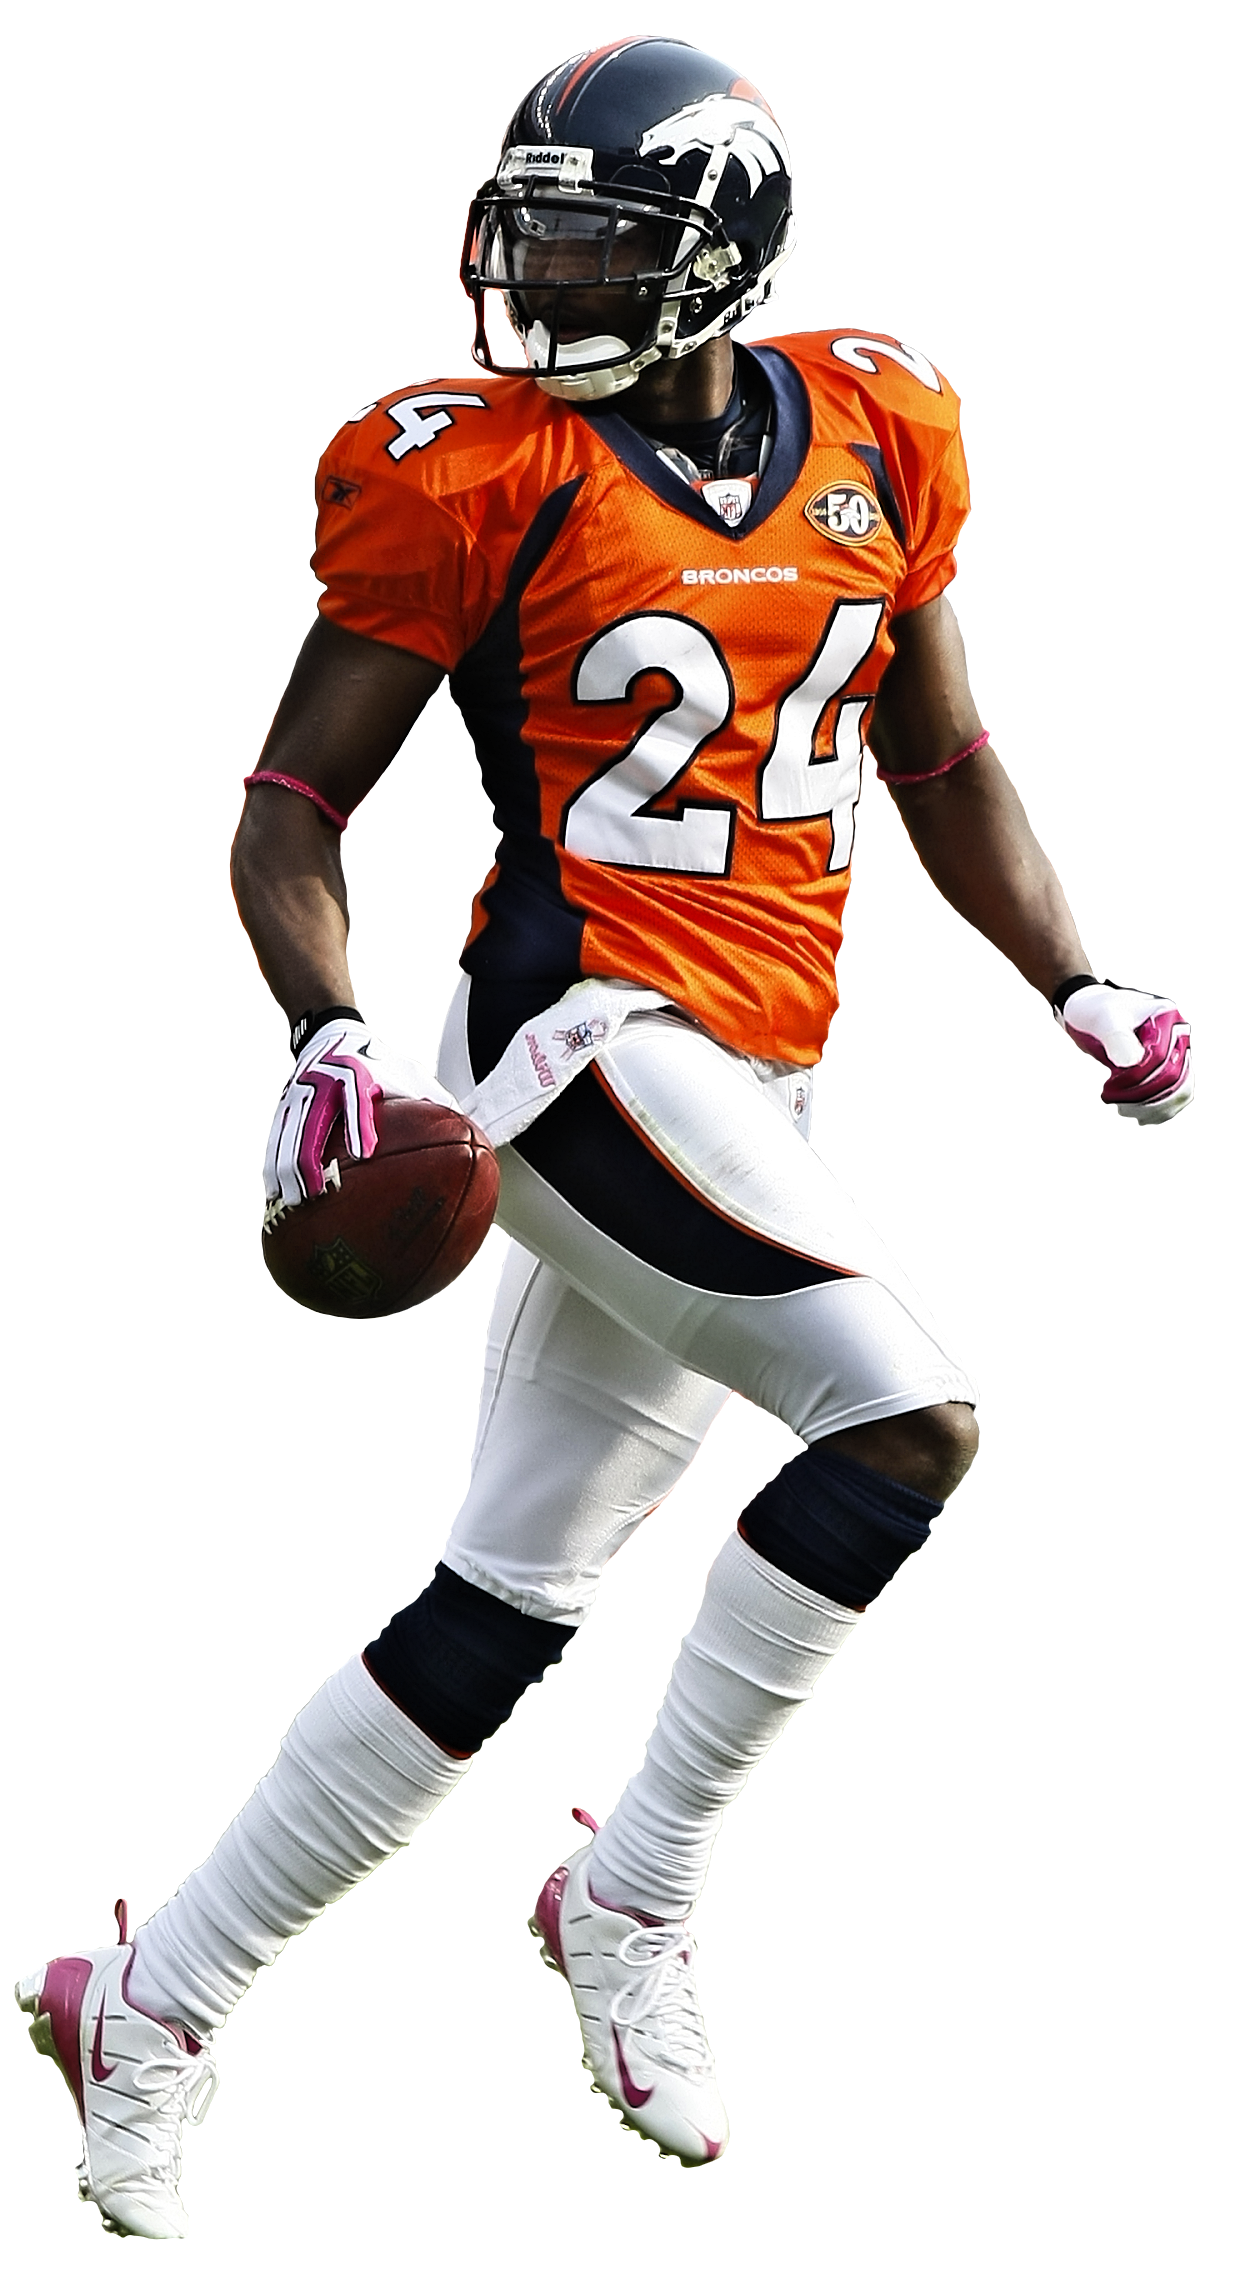 3d733cccf Champ Bailey - NFL Denver Broncos You could say he makes me  smile...obsessed.